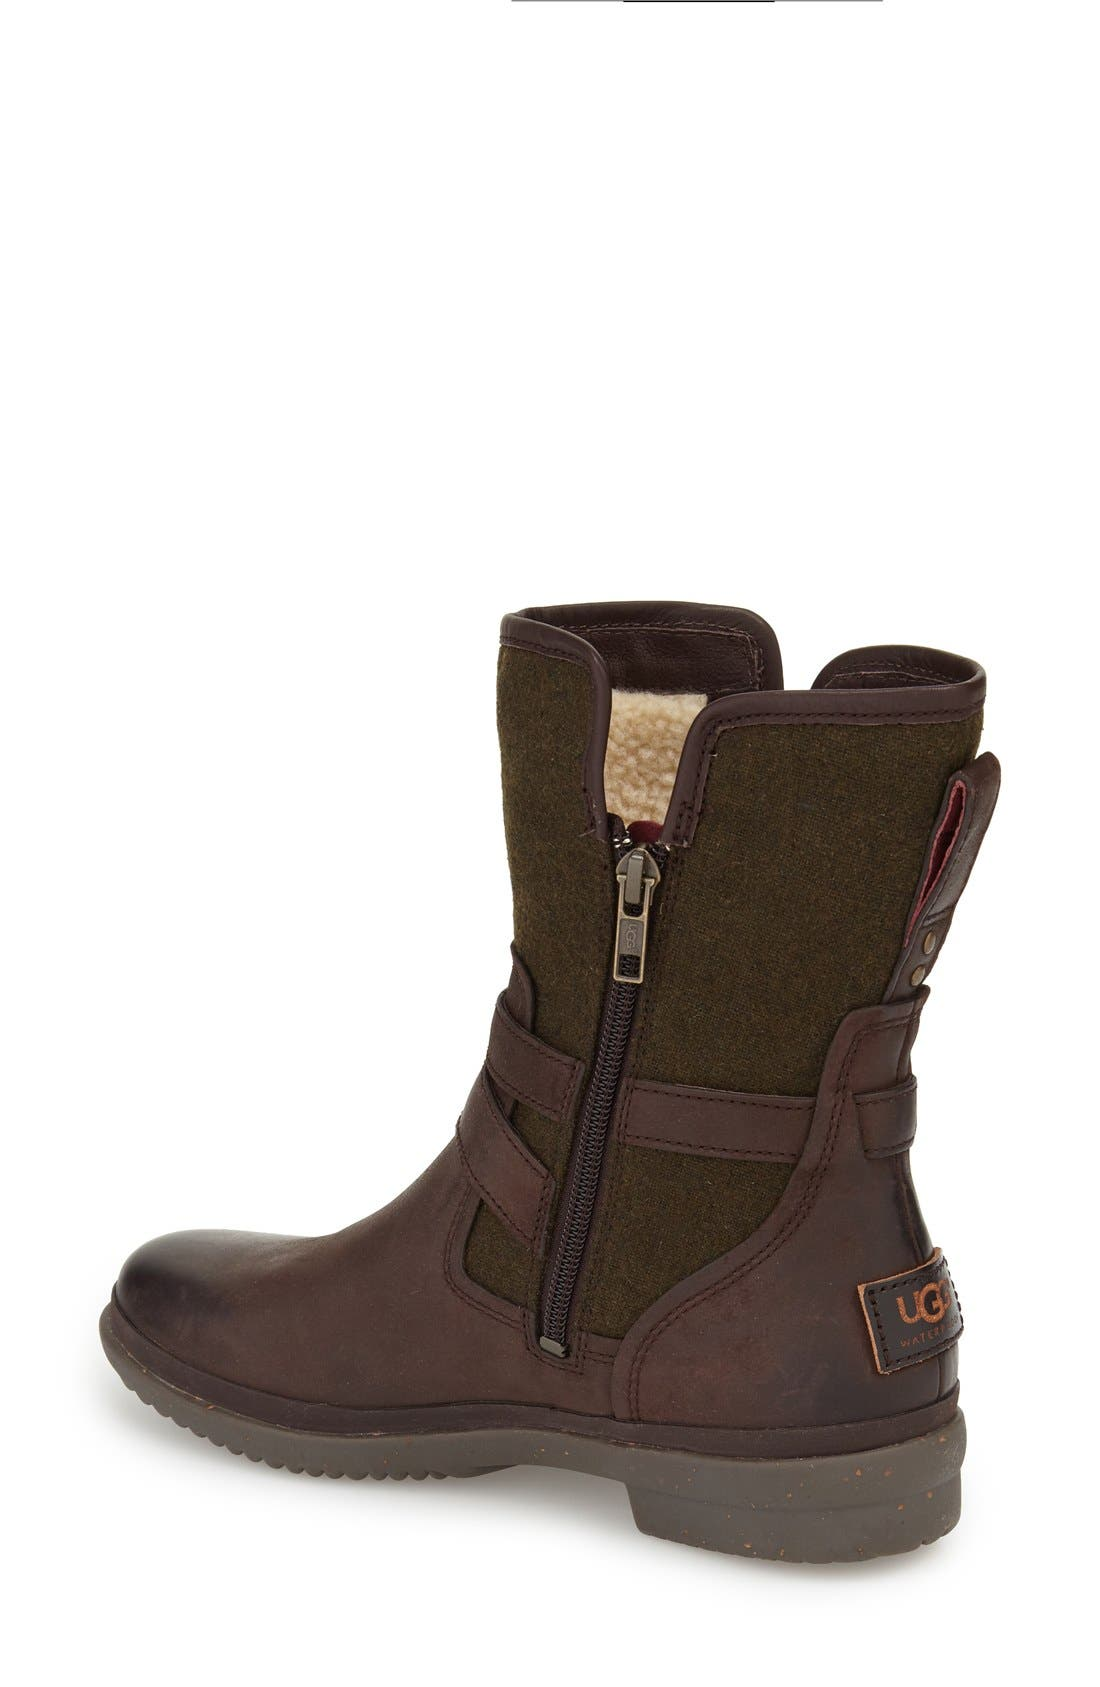 Simmens Waterproof Leather Boot,                             Alternate thumbnail 4, color,                             STOUT WOOL